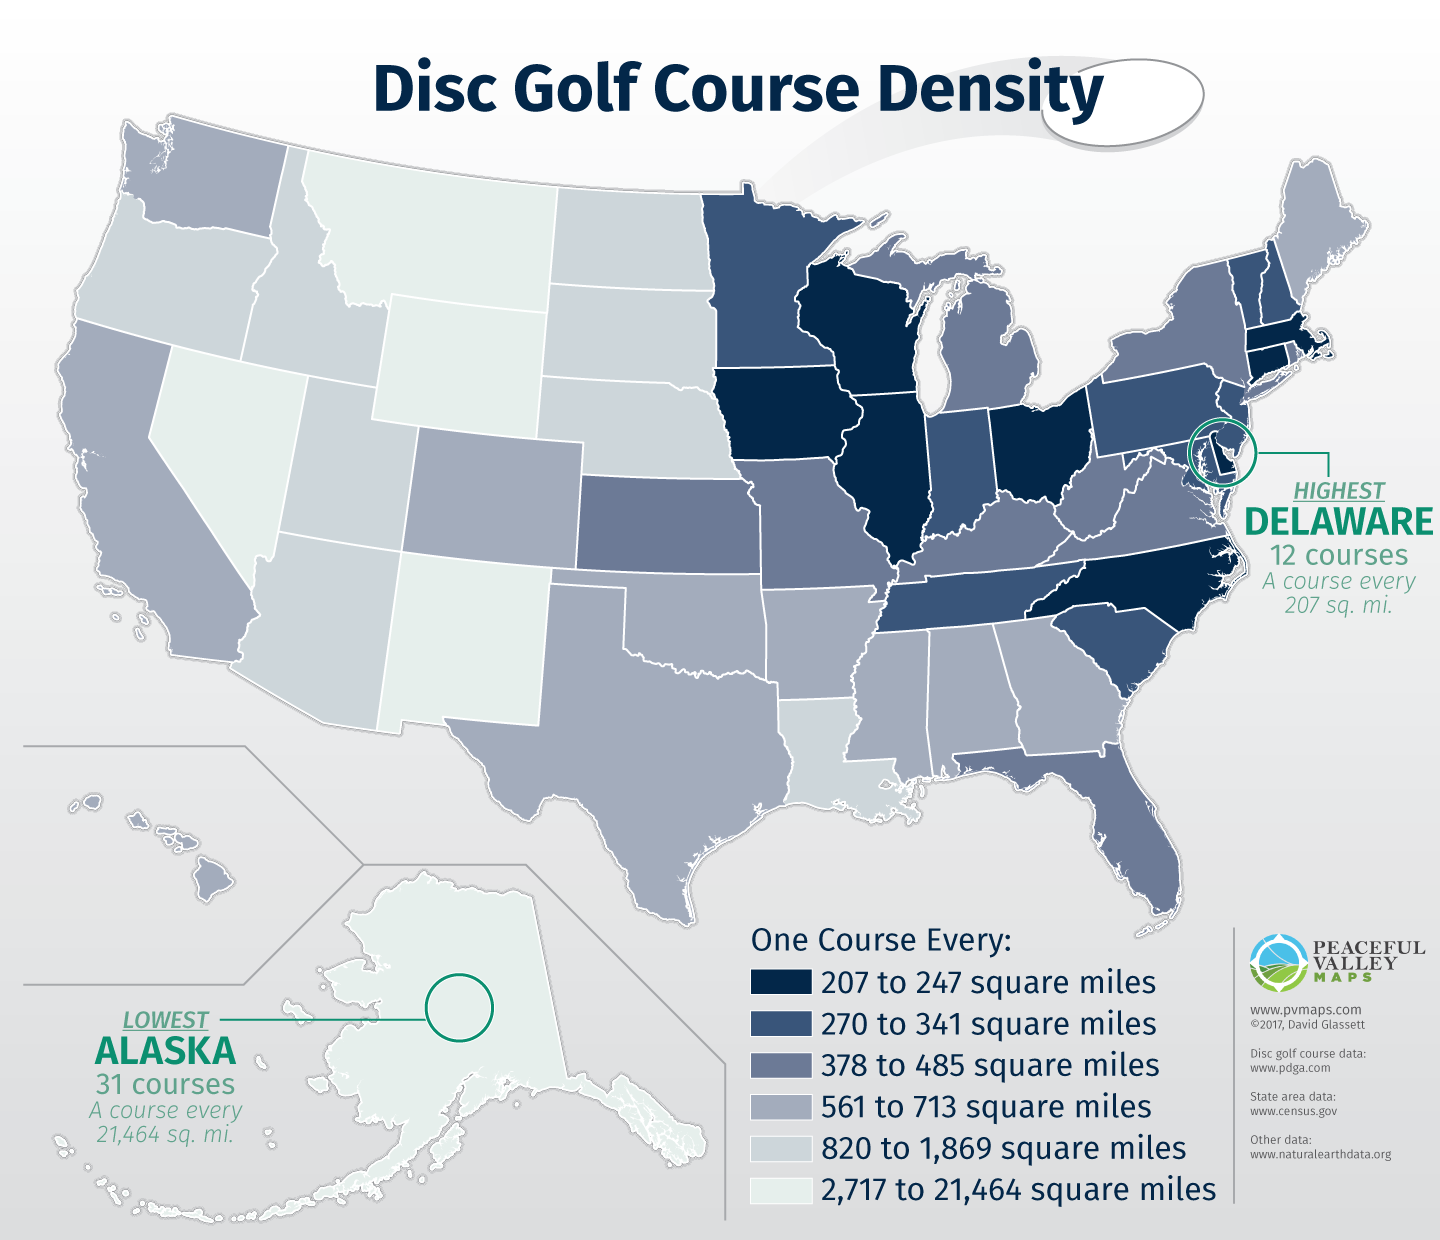 Disc Golf Course Density